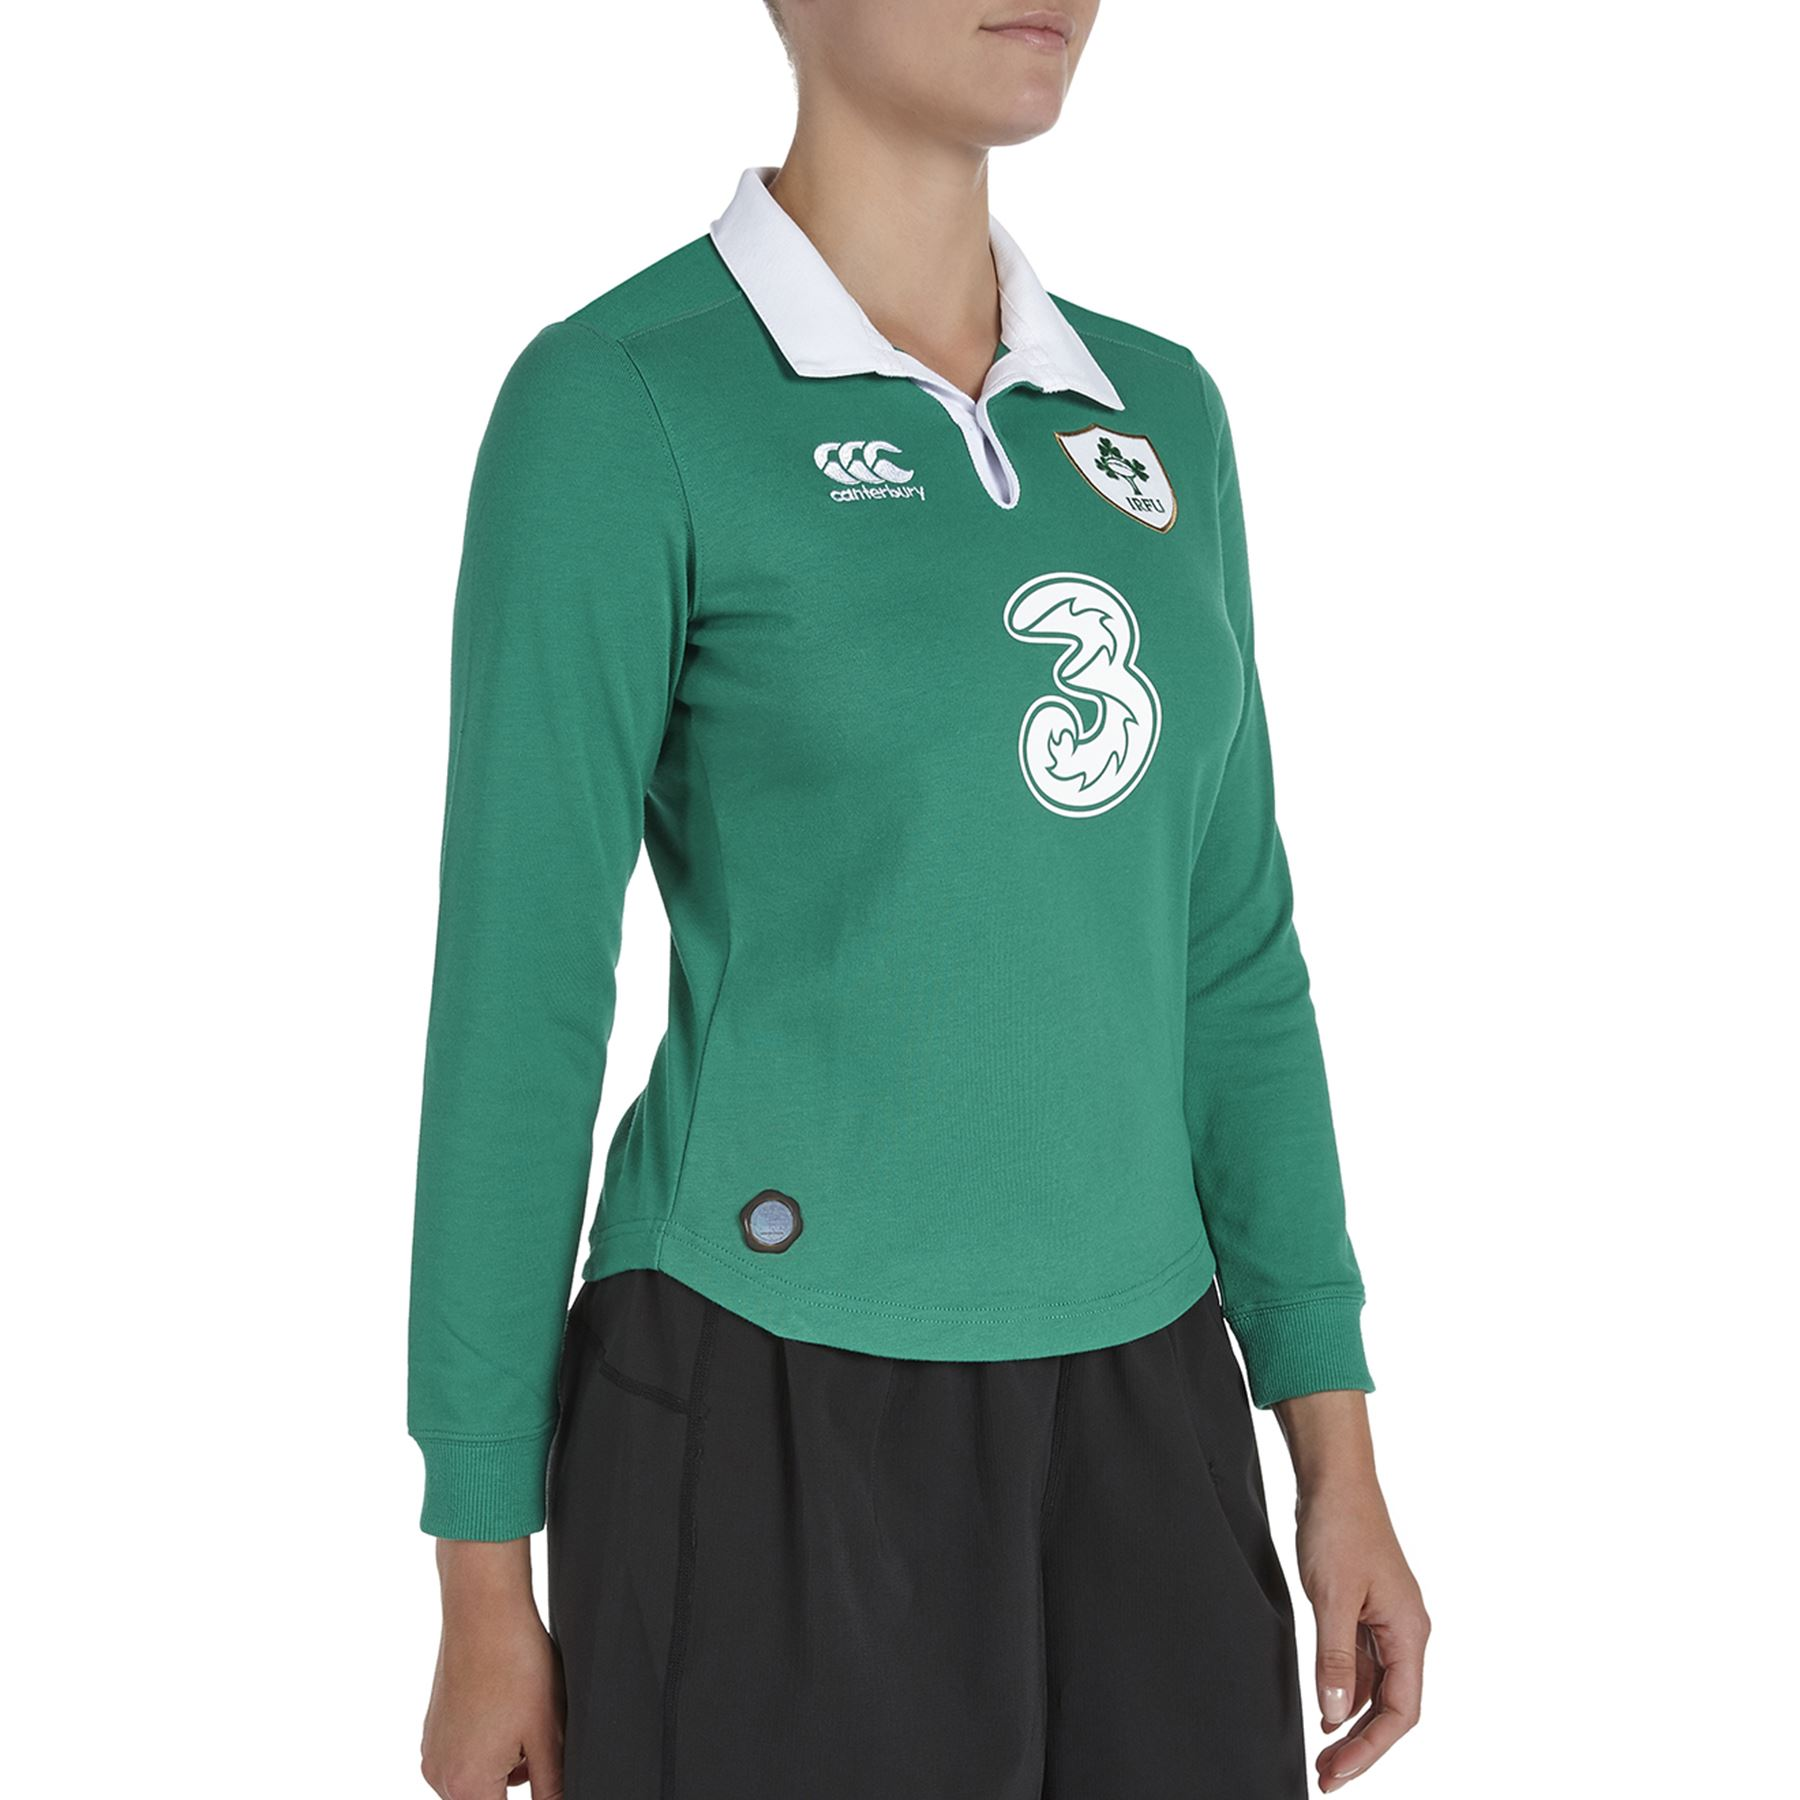 Canterbury Womens Ireland Rugby Home Classic Long Sleeve